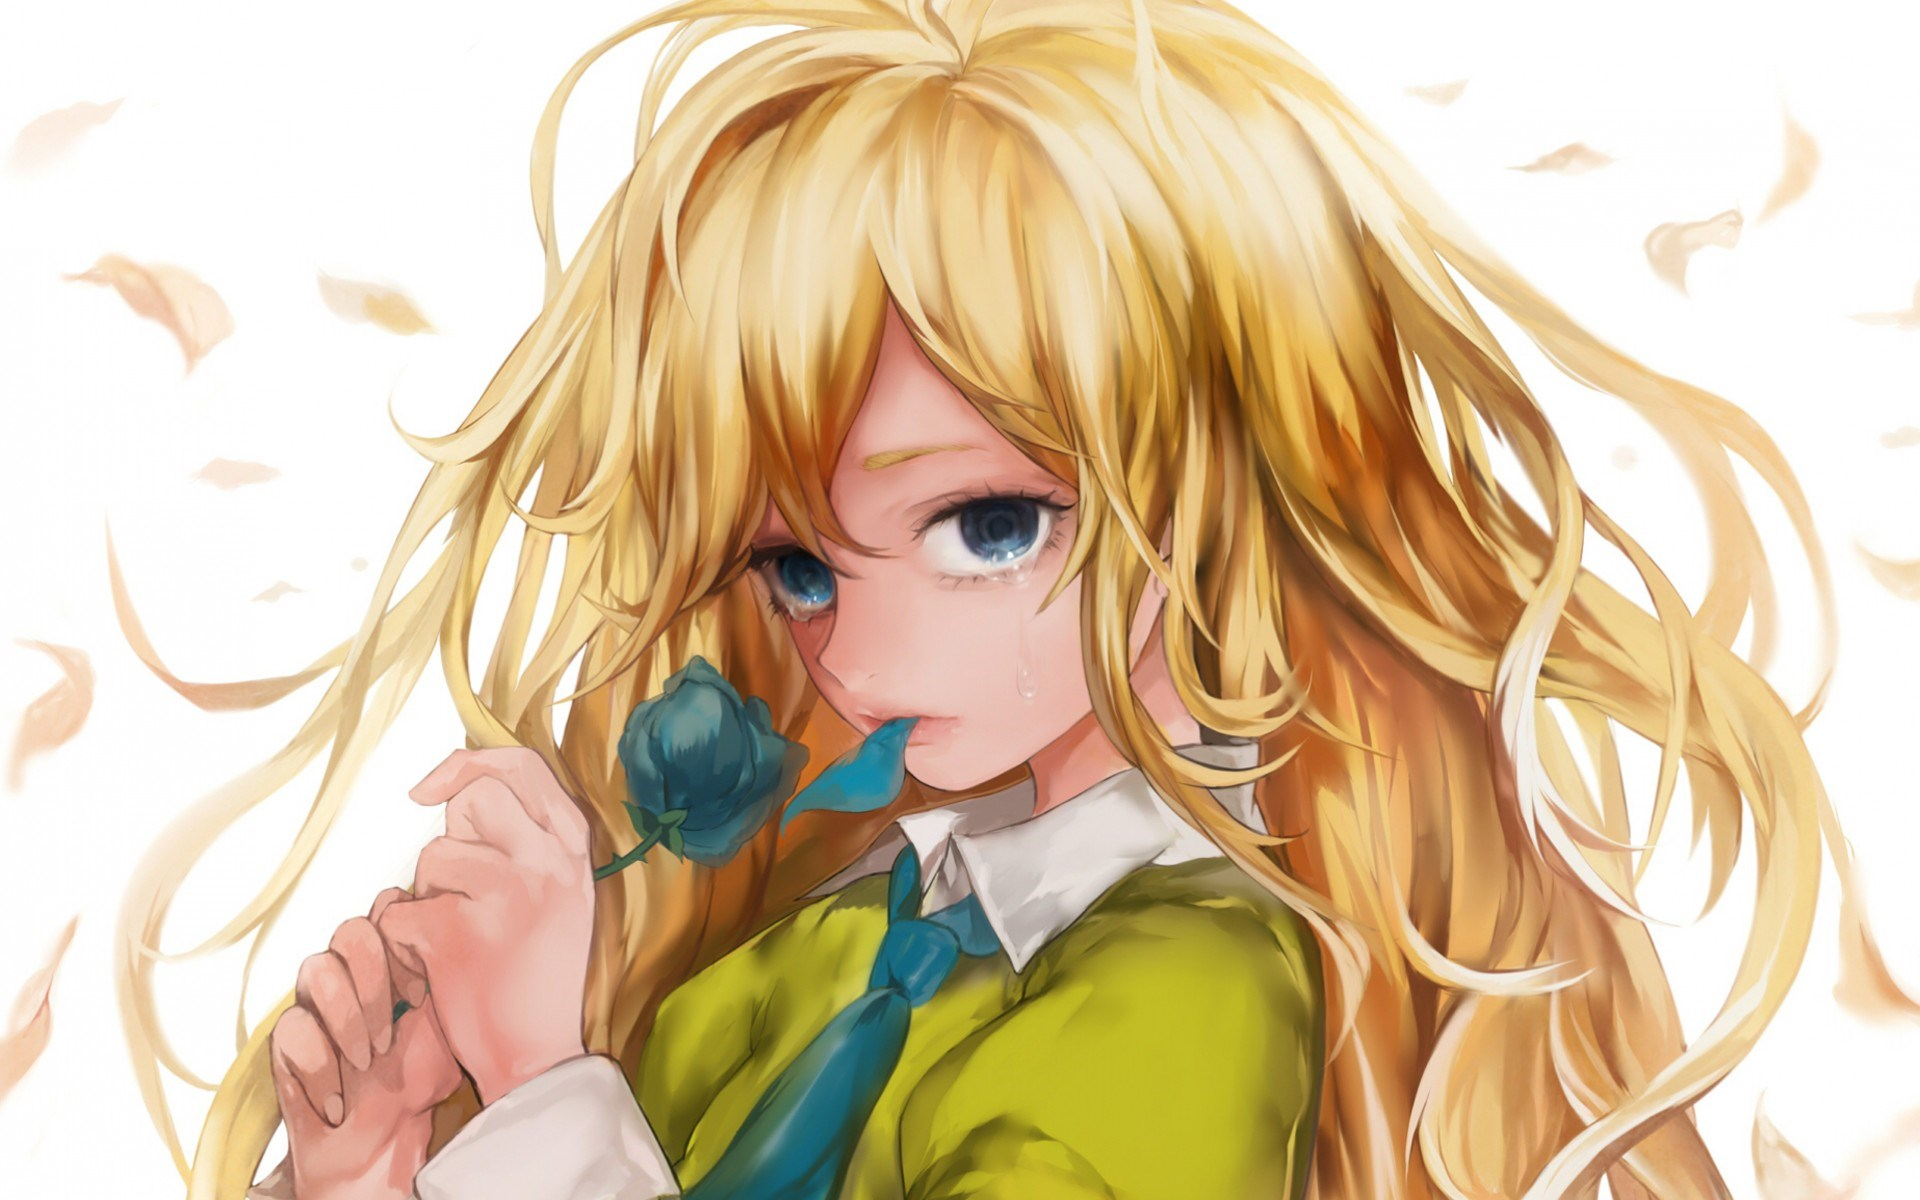 Girl Blonde Rose Art